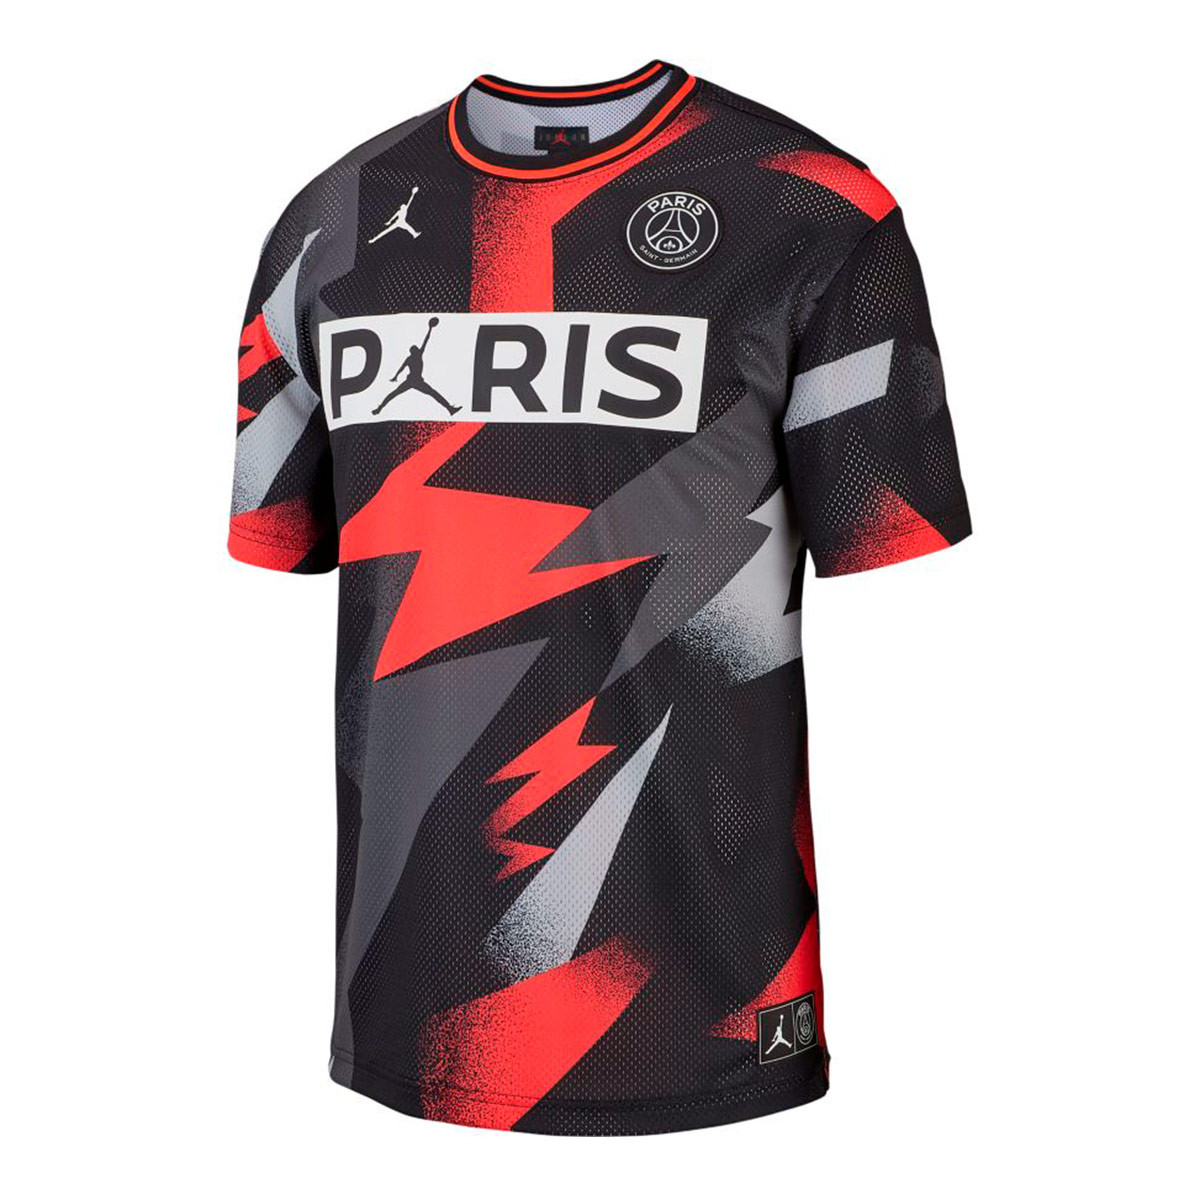 Nike Paris Saint Germain Jordan Mesh 2019 2020 Jersey